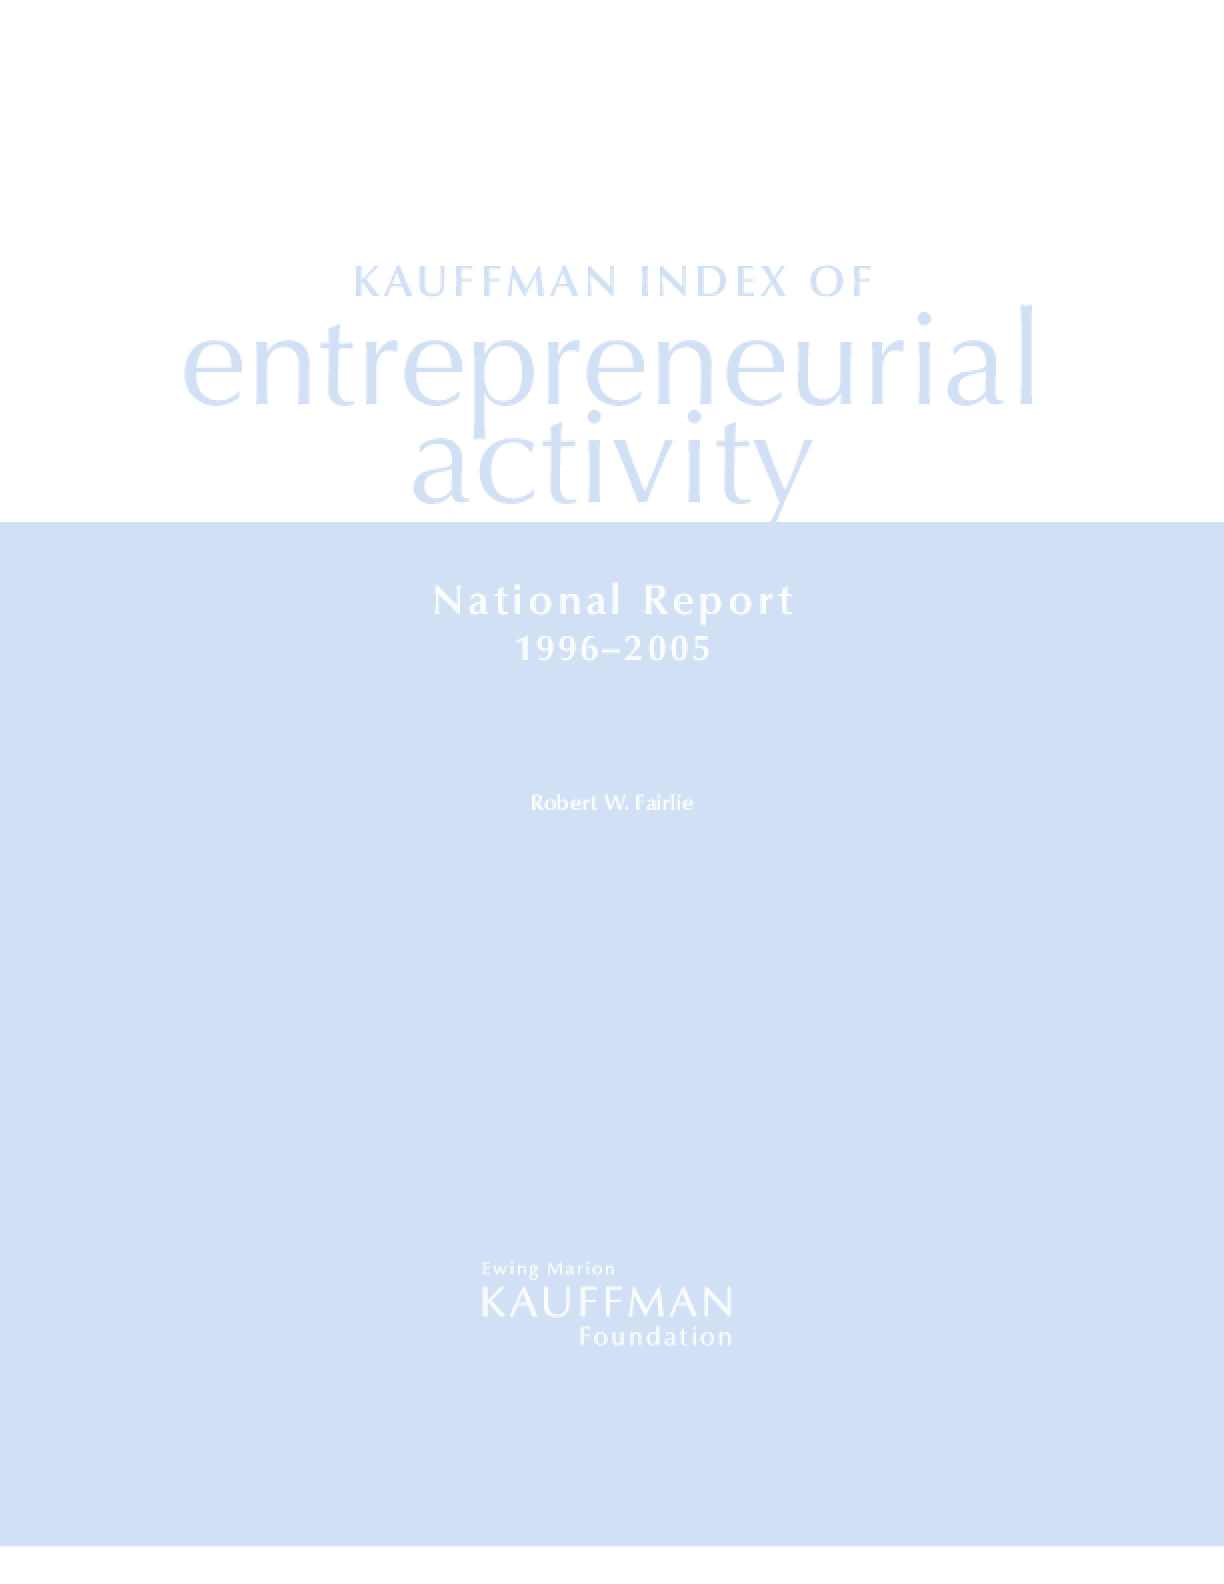 Kauffman Index of Entrepreneurial Activity: National Report 1996-2005